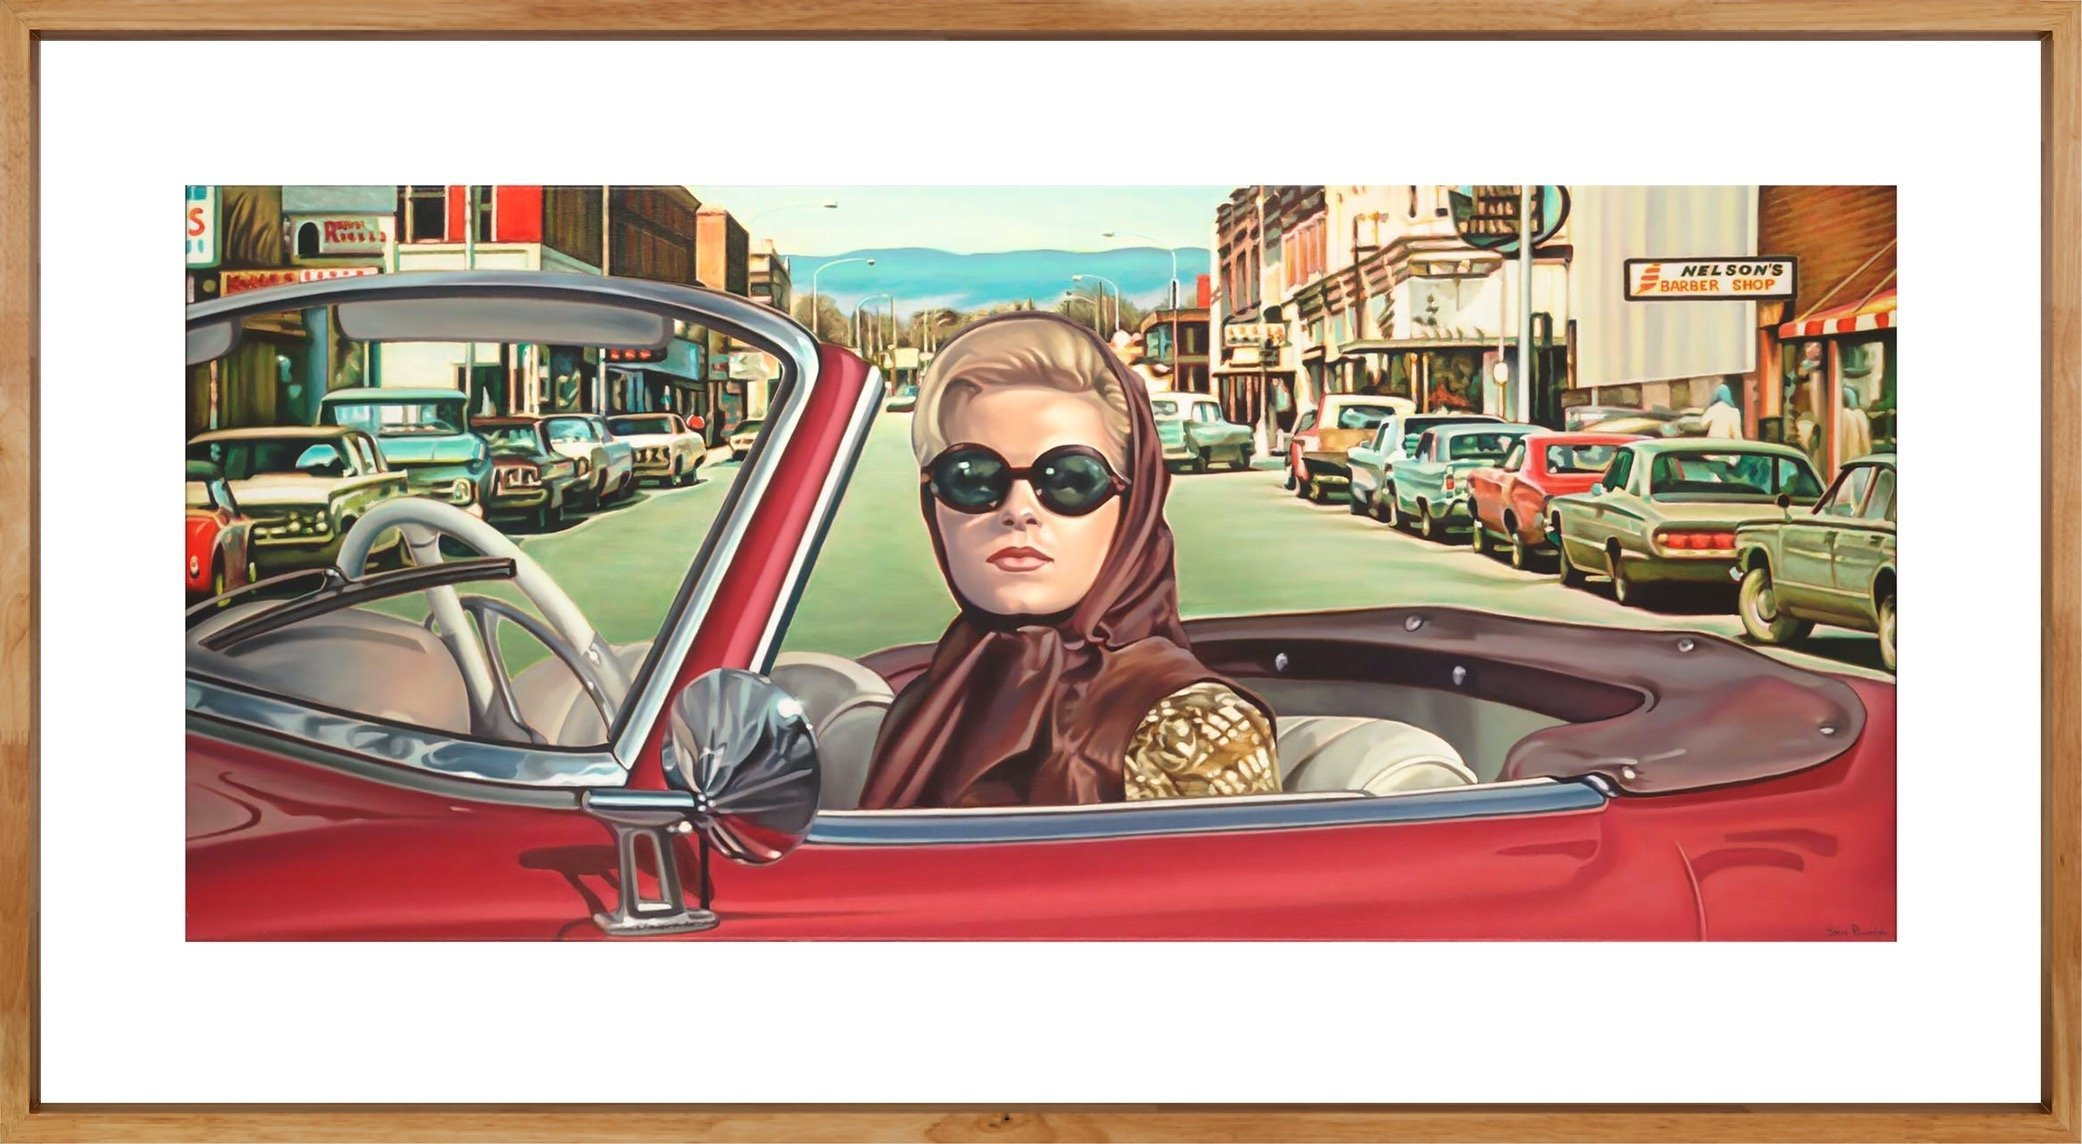 Limited Edition Print by Steve Rosendale